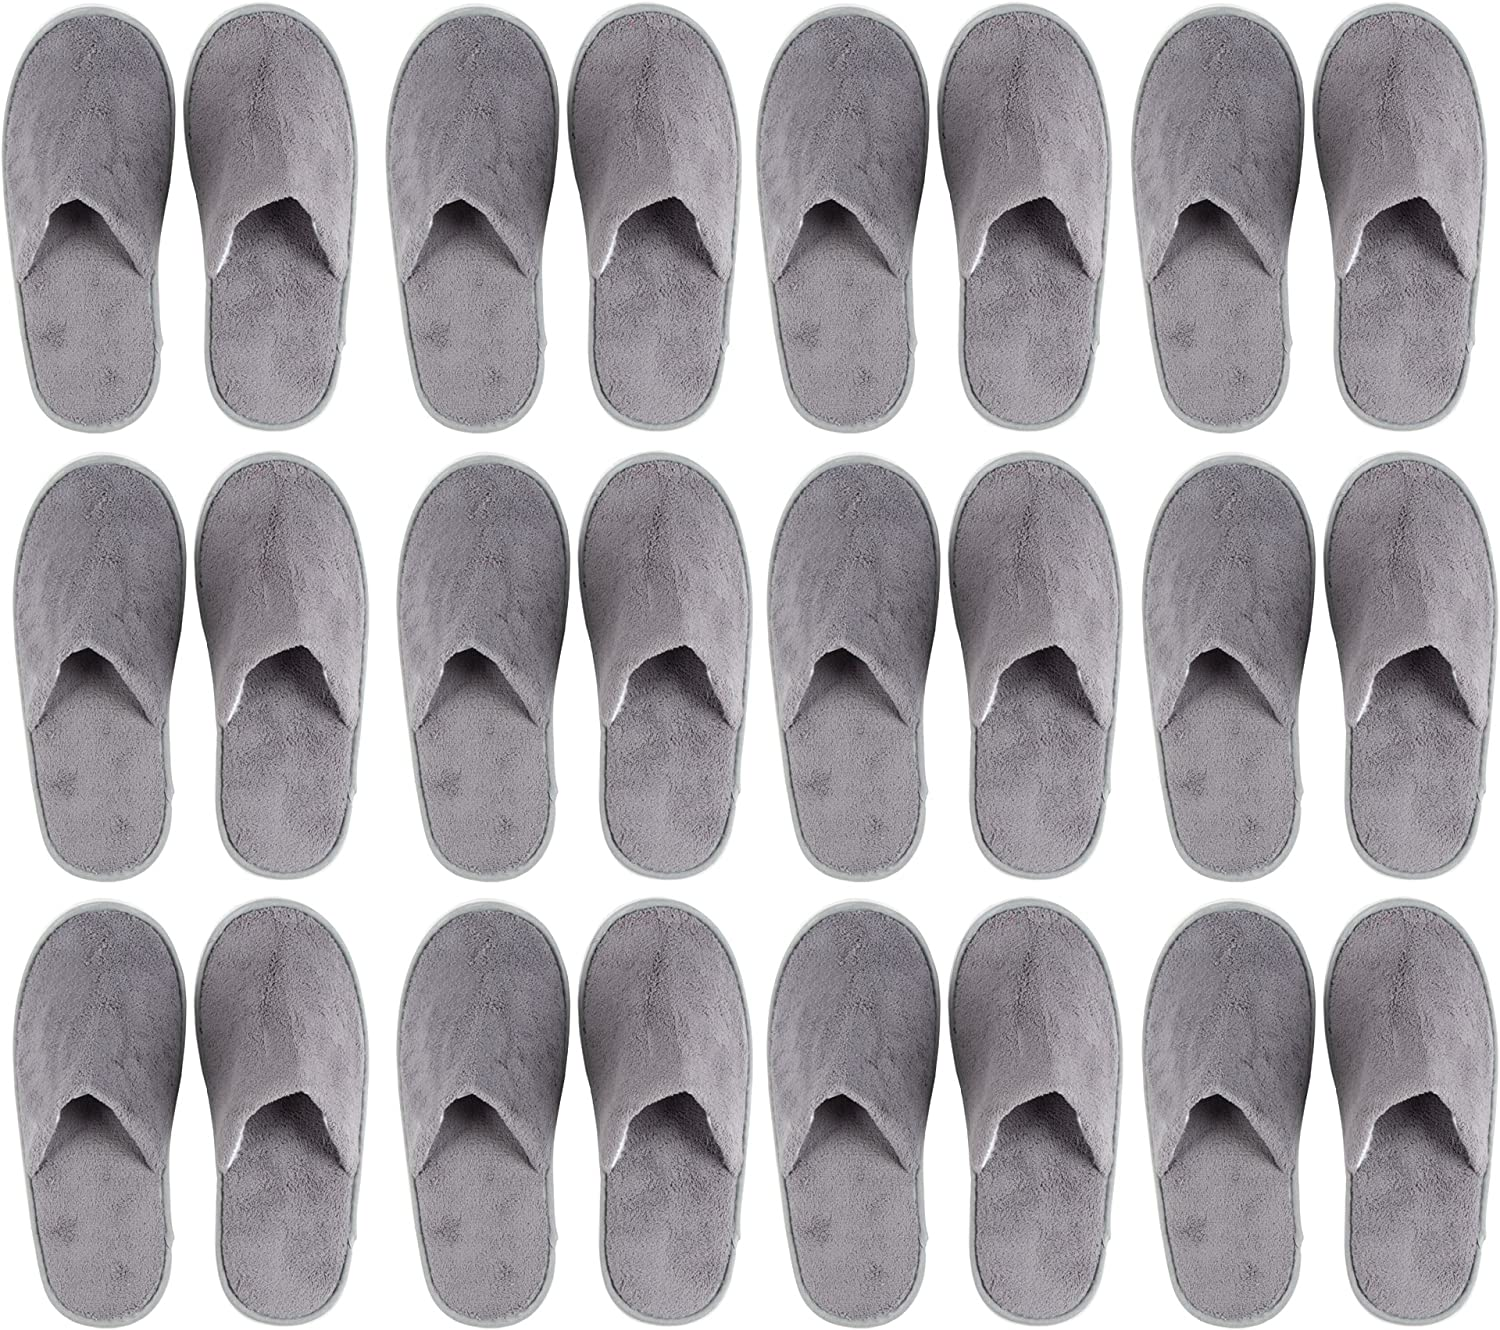 Juvale 12-Pair Disposable Slippers – Non-Slip Fleece Cloth Closed Toe Spa Slippers for Hotel, Travel, Guest and Home - Fits Up to US Men Size 11 & US Women Size 12, Gray